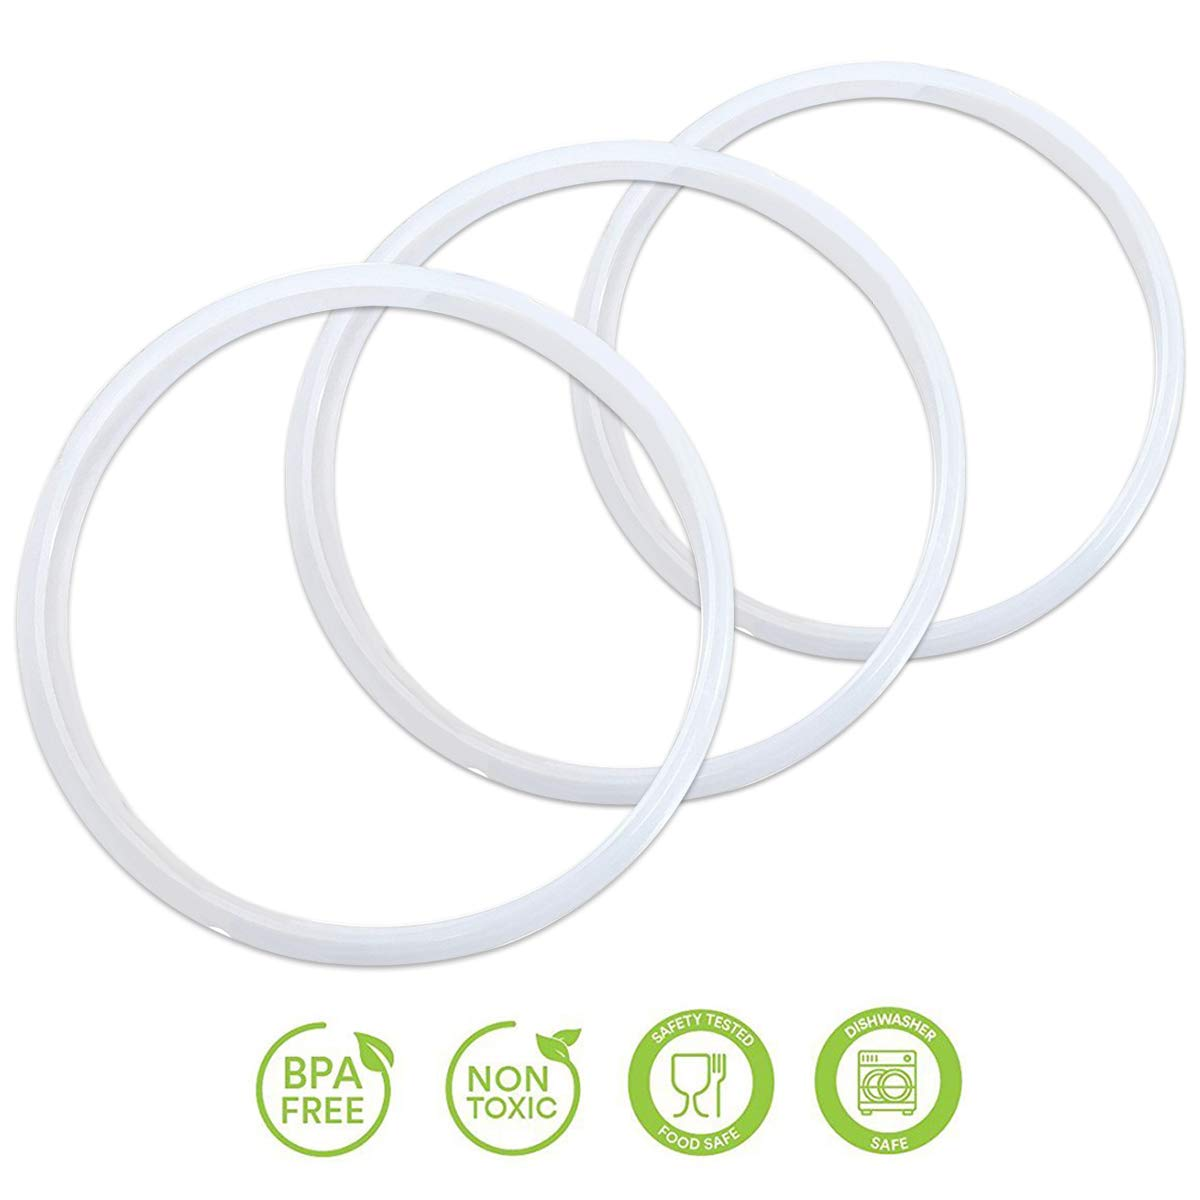 3 Pack Instant Pot 6 Quart and Crock Pot Express Multi-Cooker Sealing Ring Gaskets- Clear Color